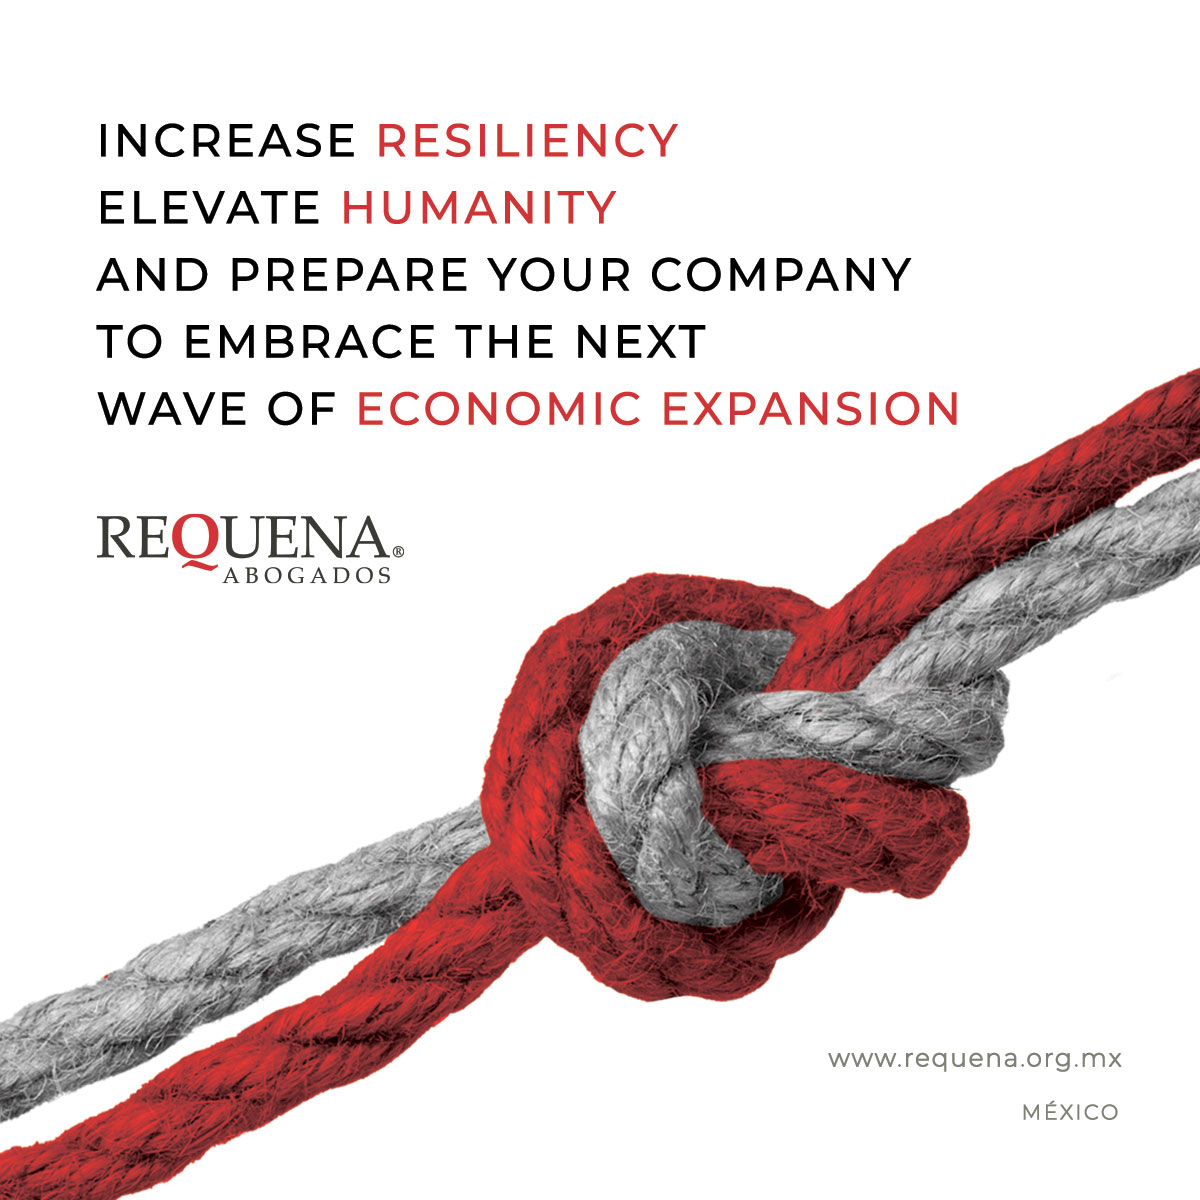 Increase resiliency elevate humanity and prepare your company to embrace the next wave of economic expansion | Covid-19 | Requena Abogados